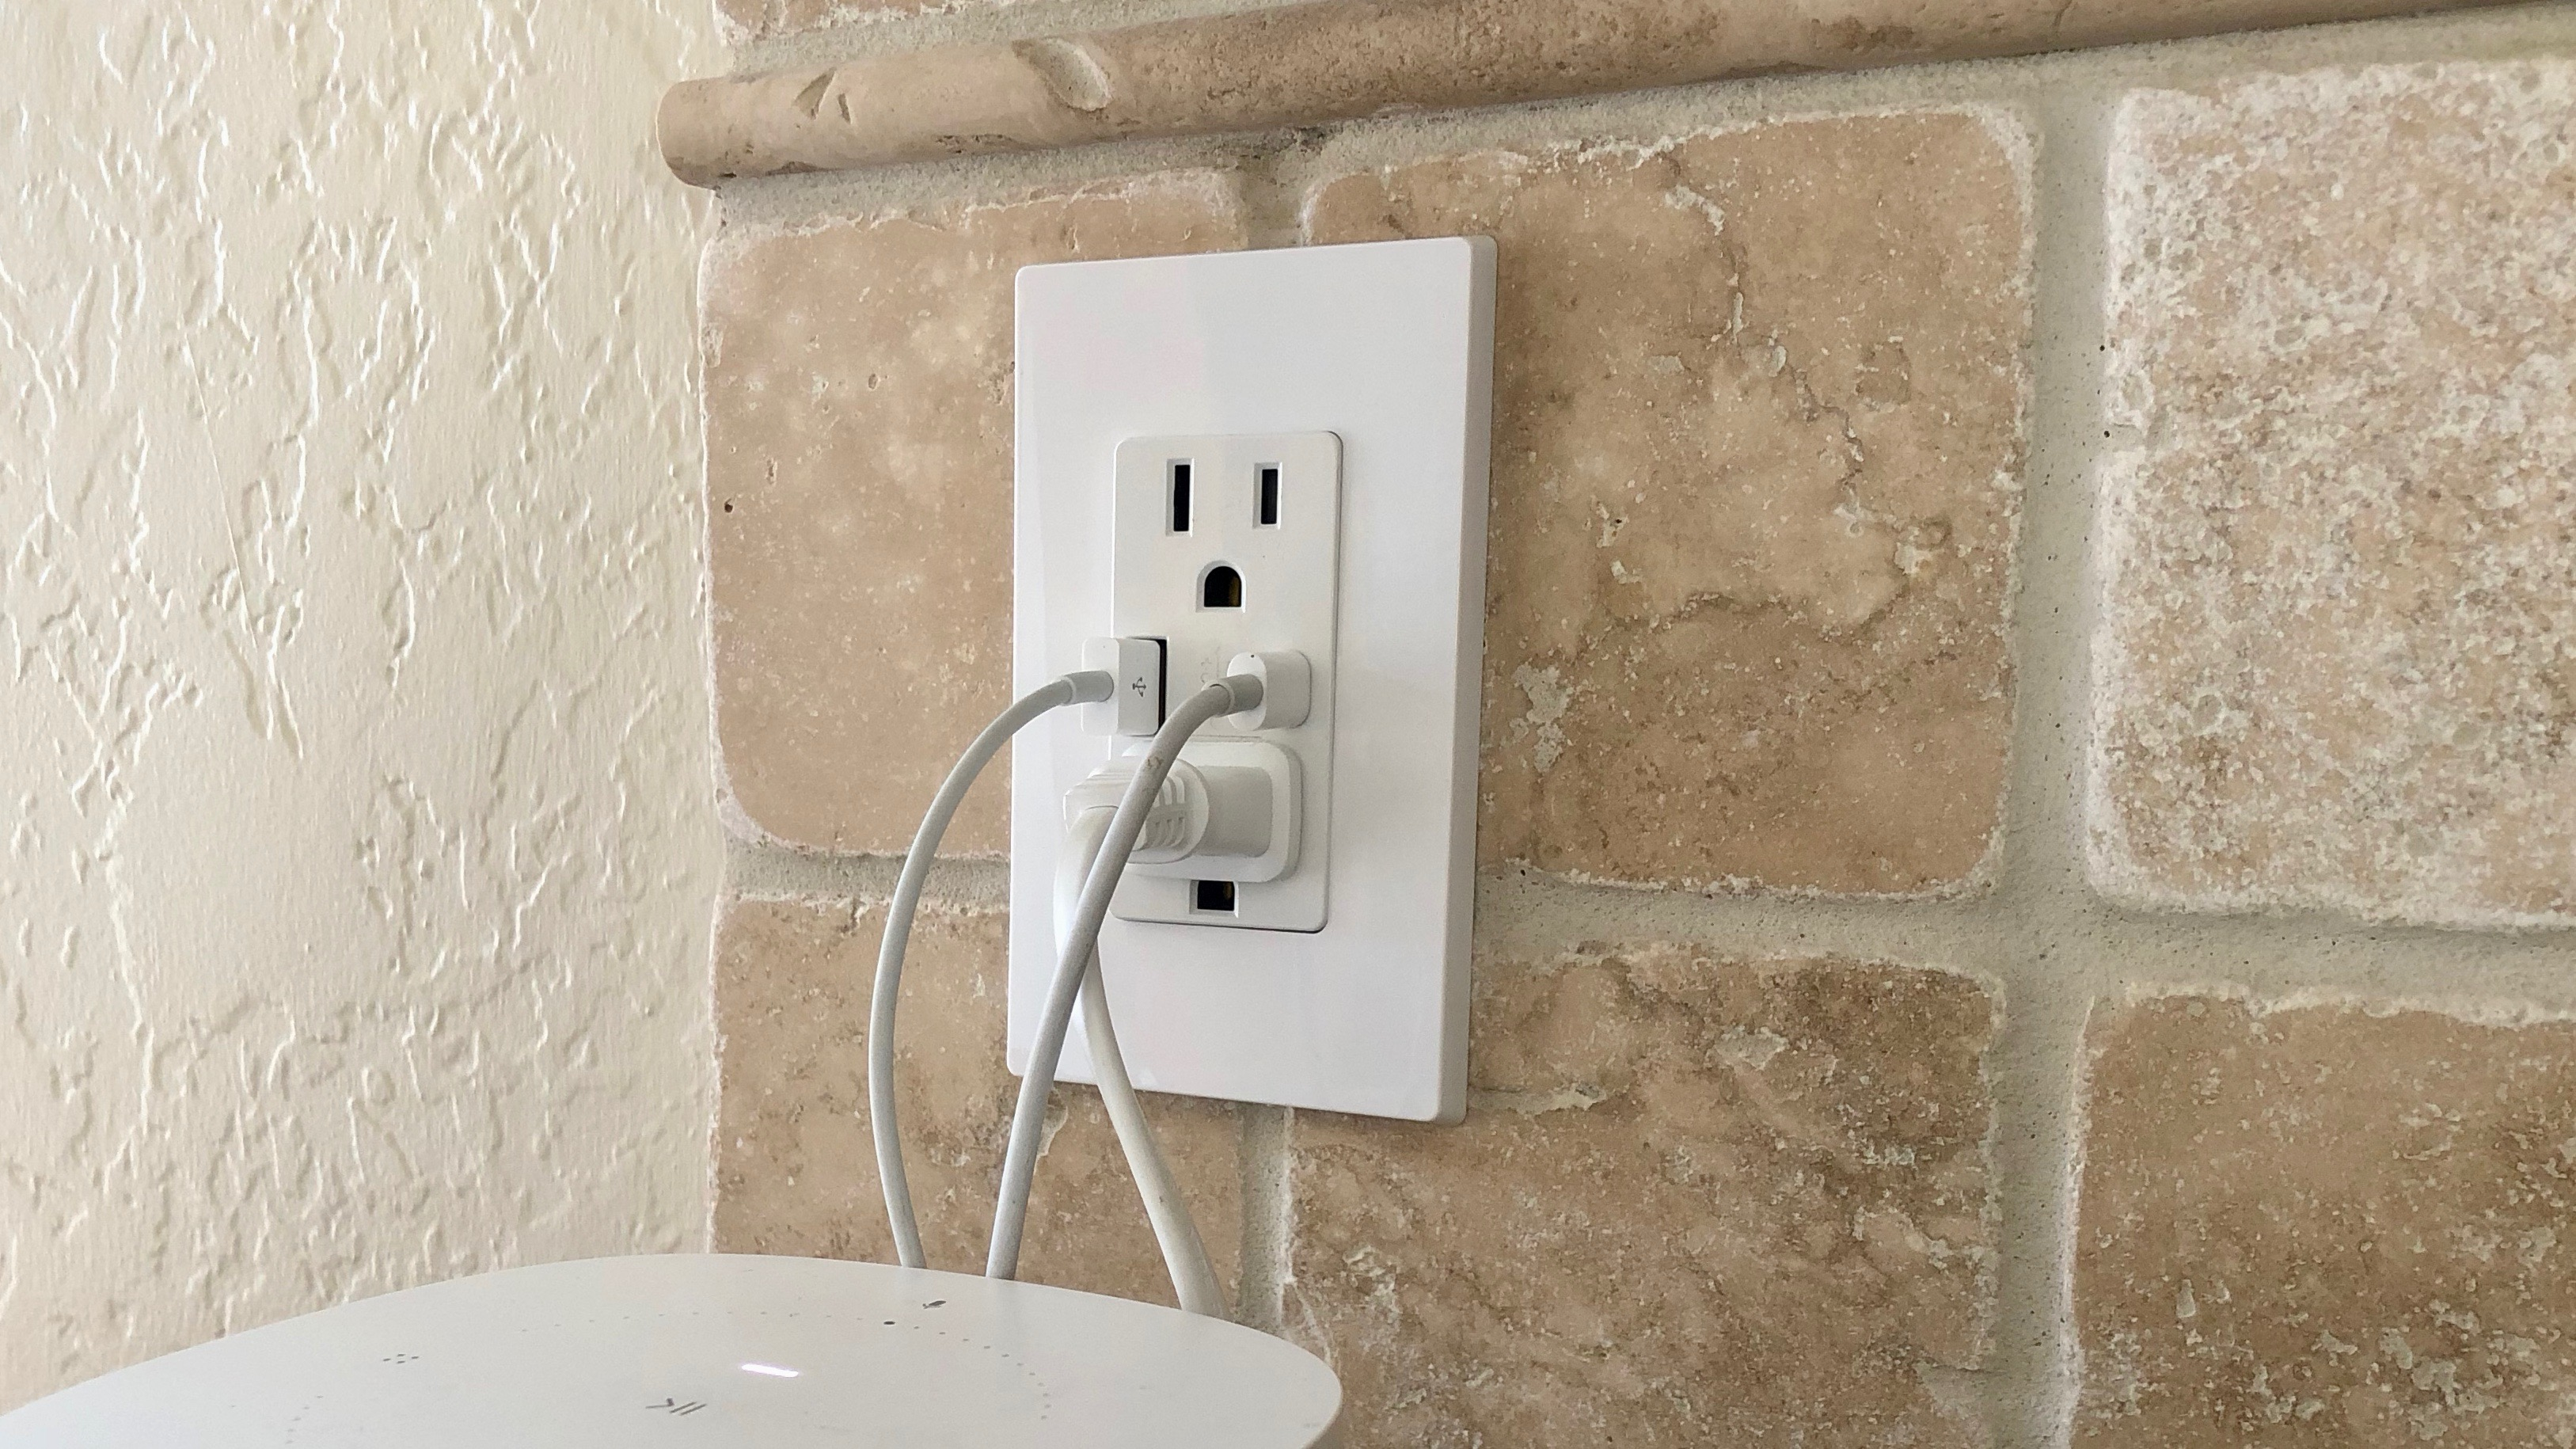 Usb Outlet Switch Wiring Electrical Diagram A Plug Review Levitons C Wall Offers Lots Of Charging